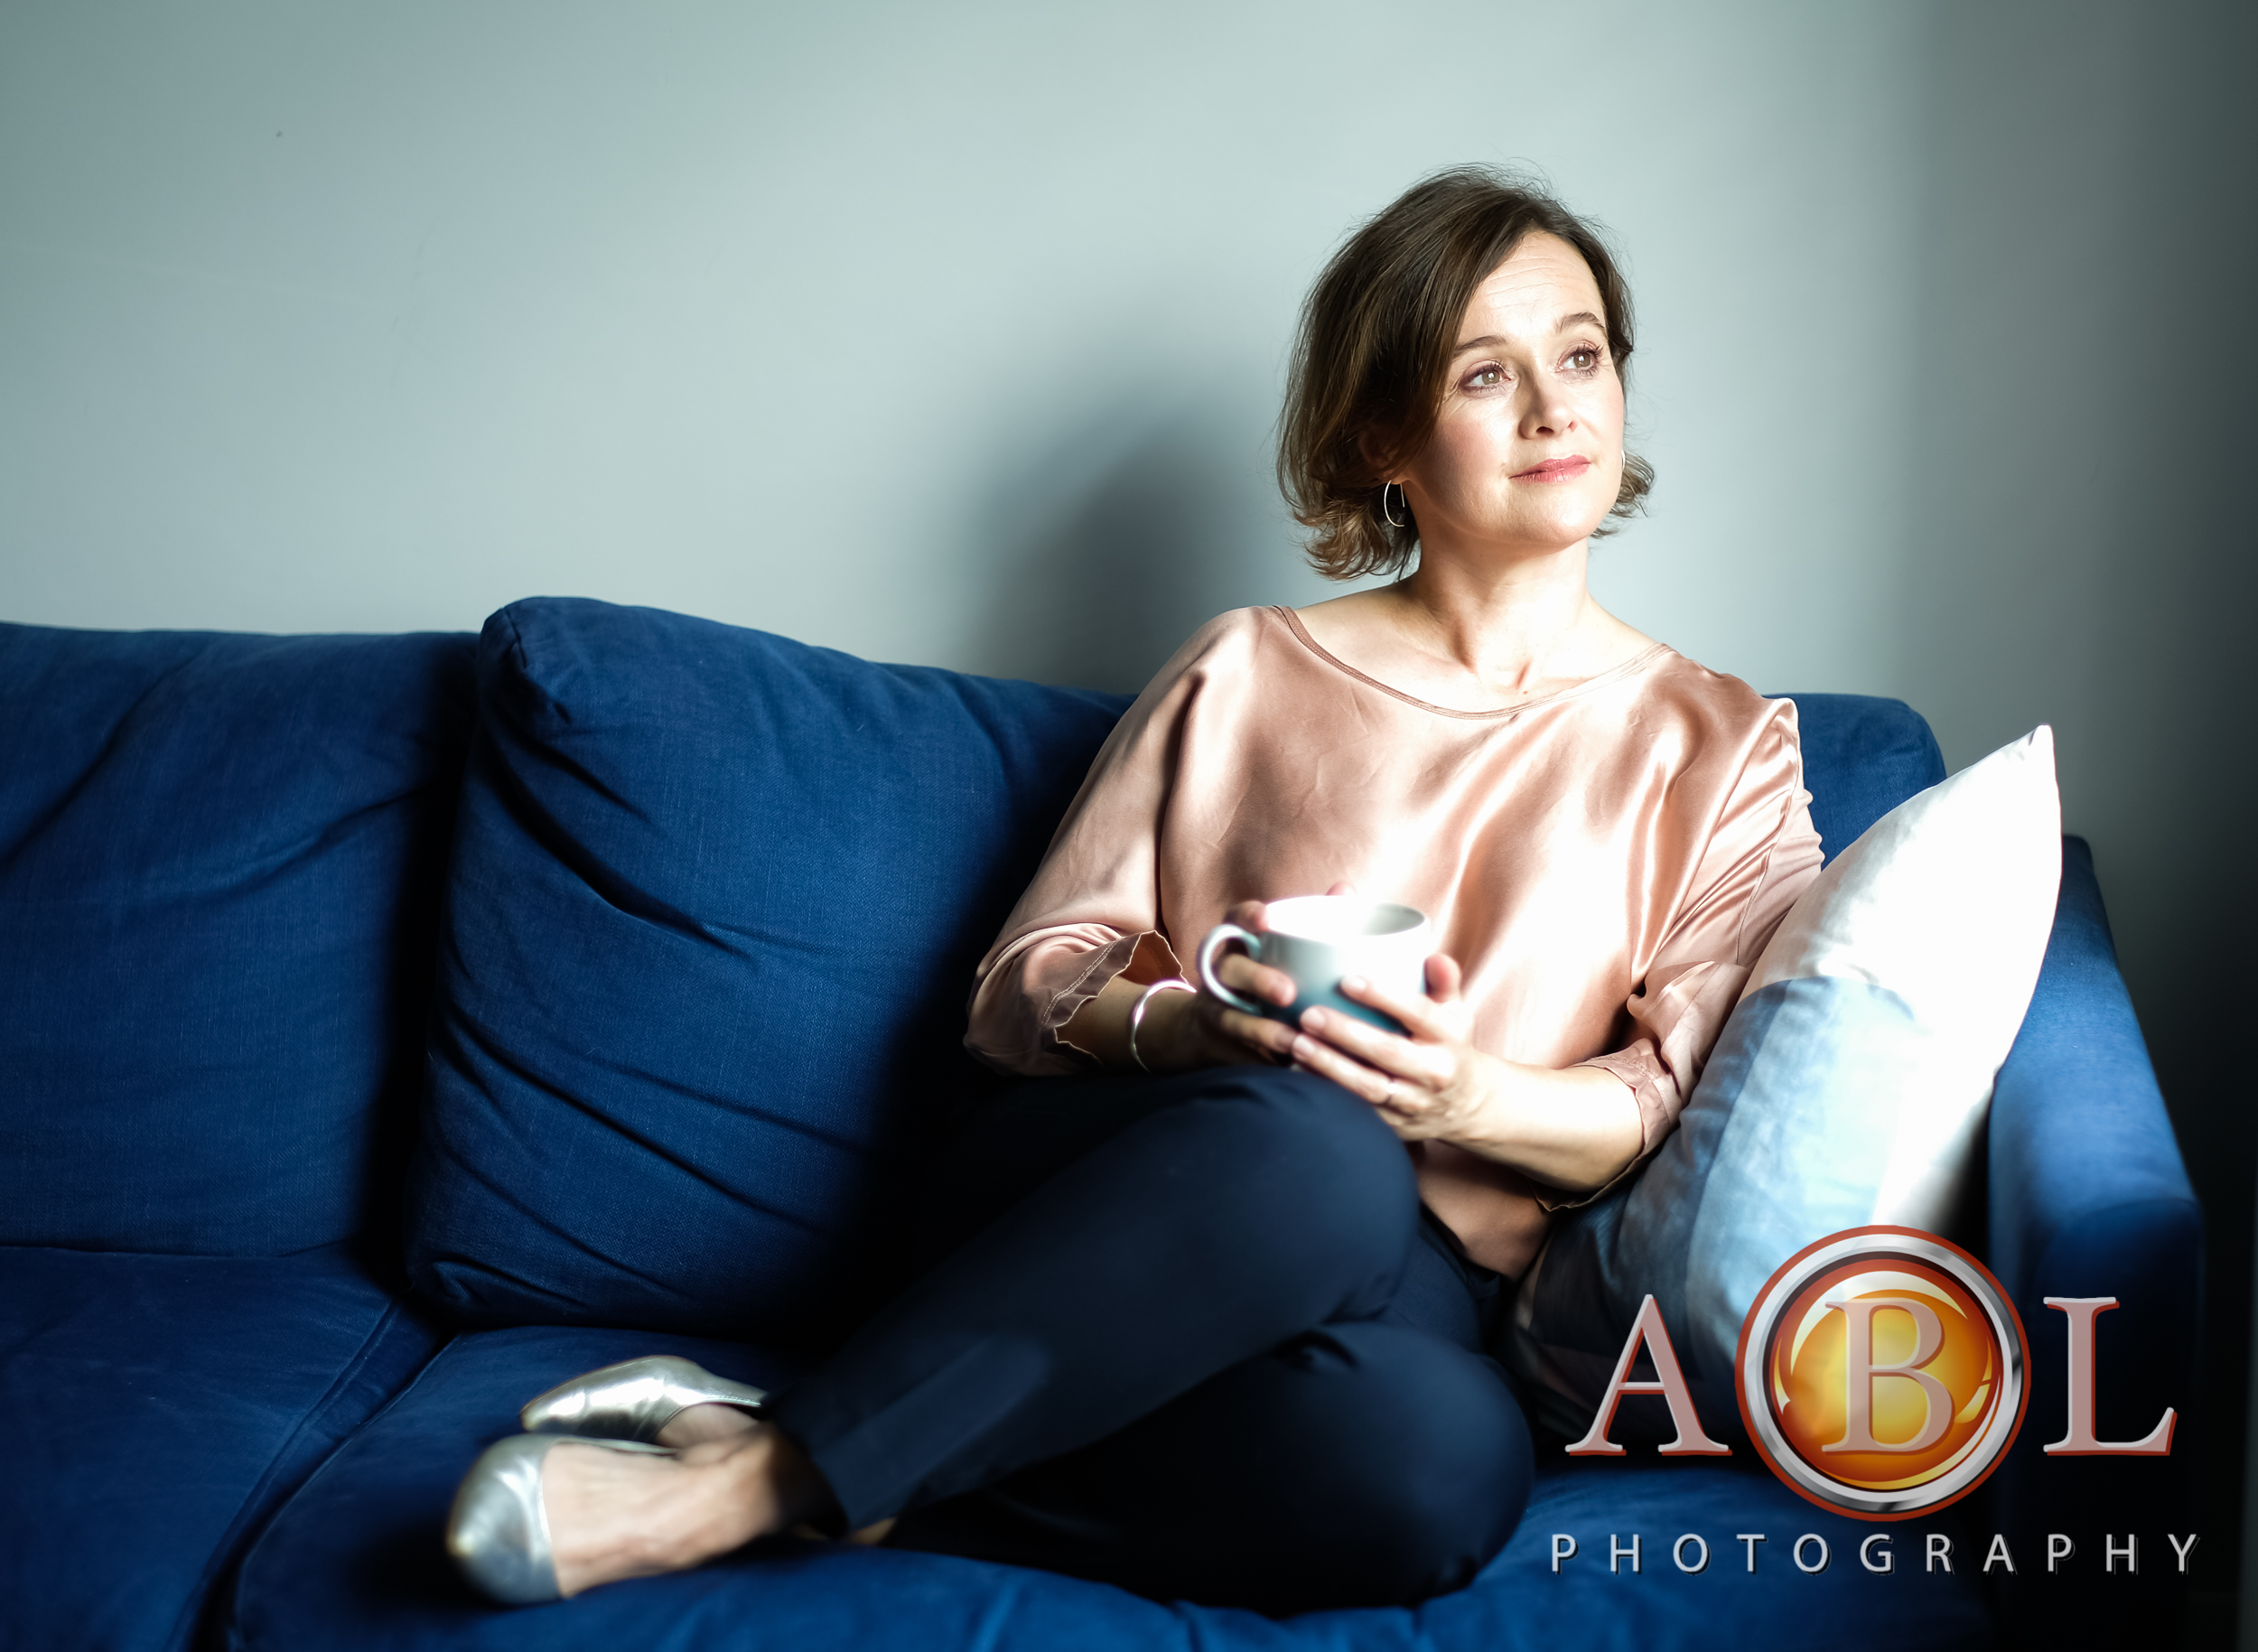 Sophie Morris during a Business Branding Photo-Session